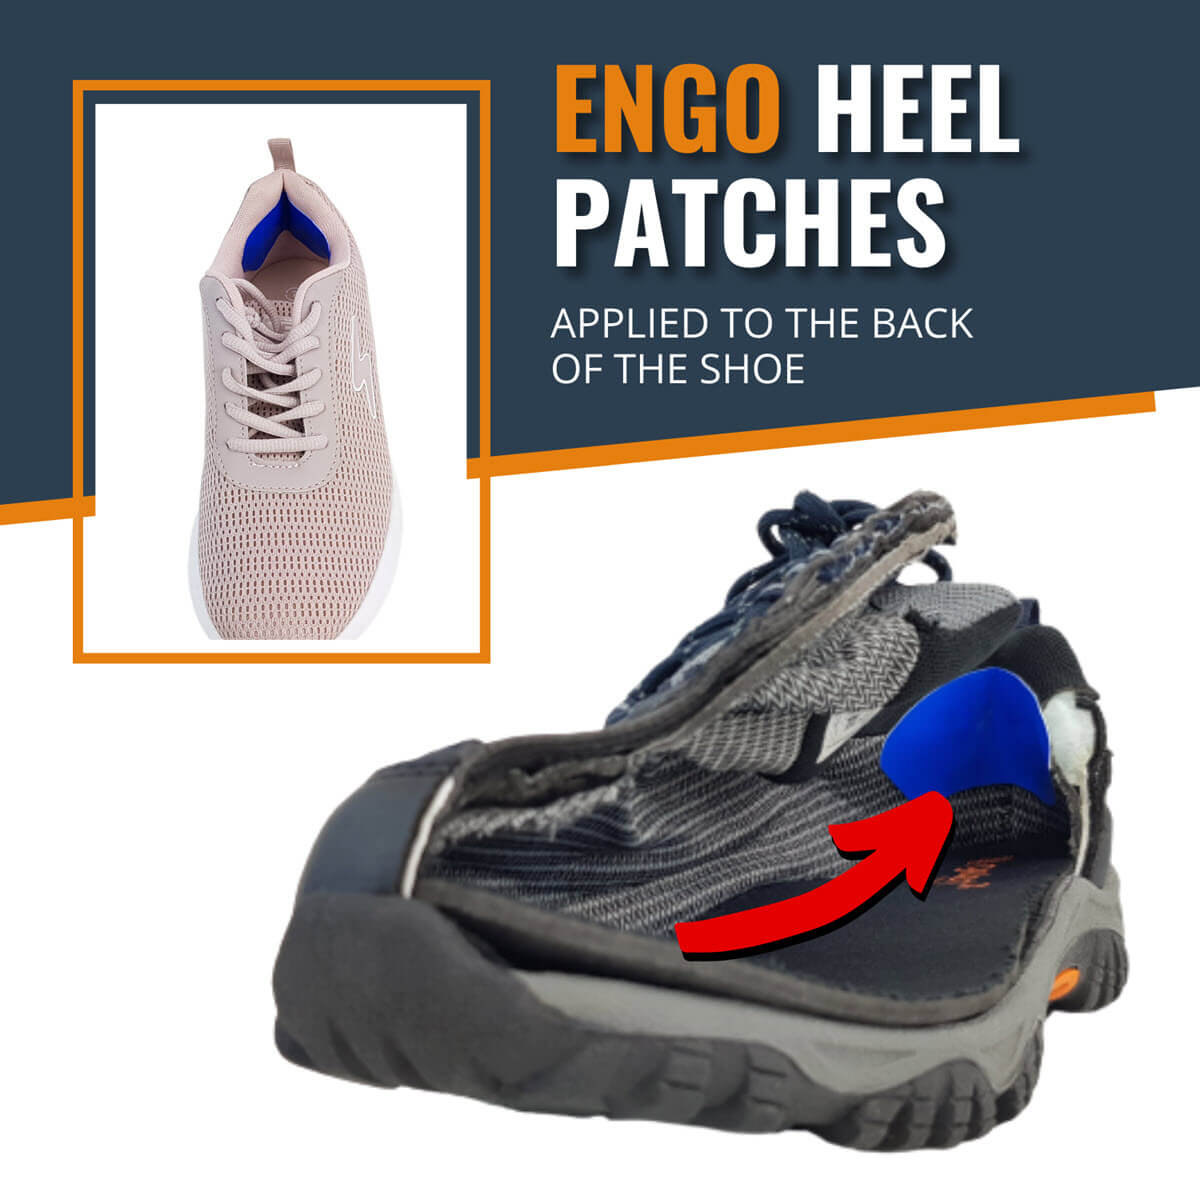 ENGO Blister Patches Heel Pack heel patches applied to the back of the shoe